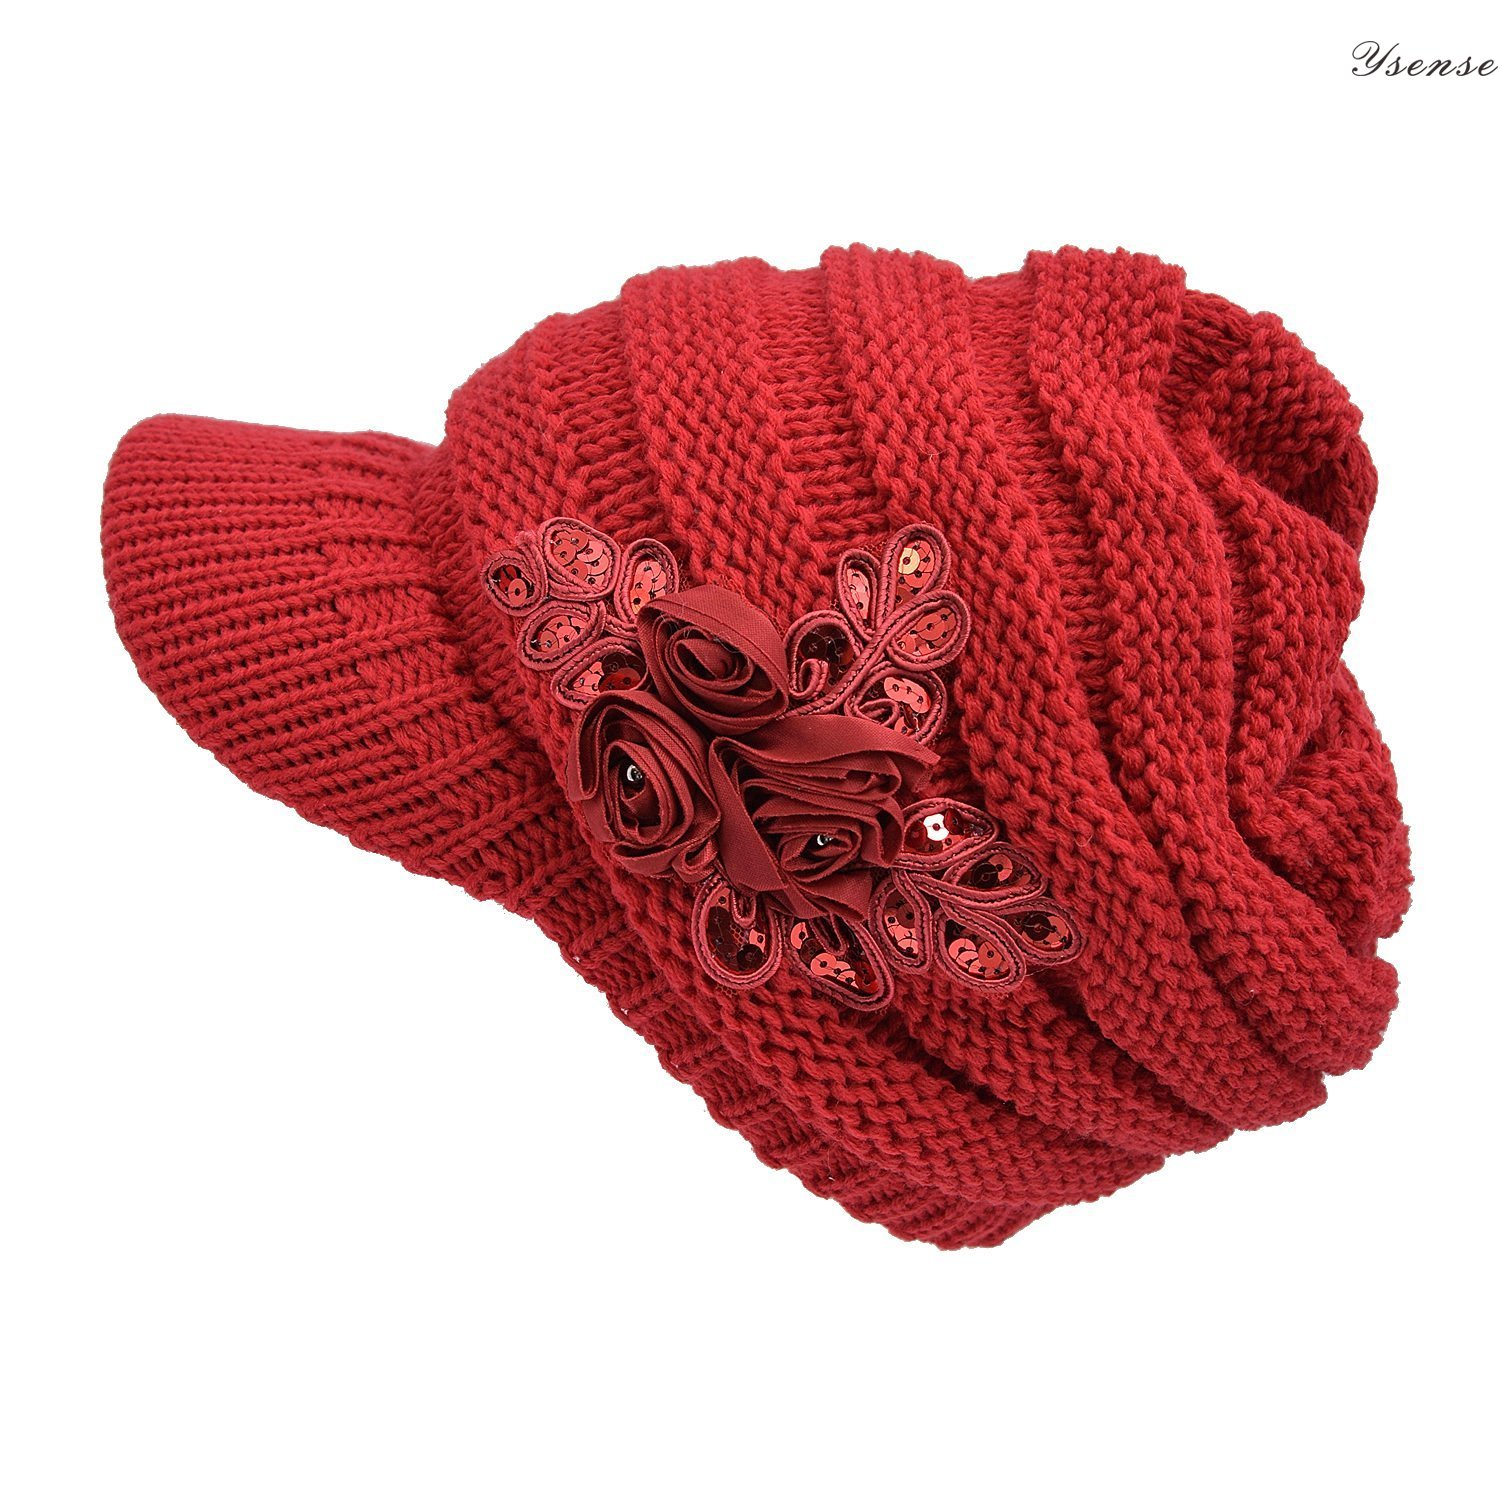 YSense - Women's Cable Knit Newsboy Visor Cap Hat with Sequined Flower